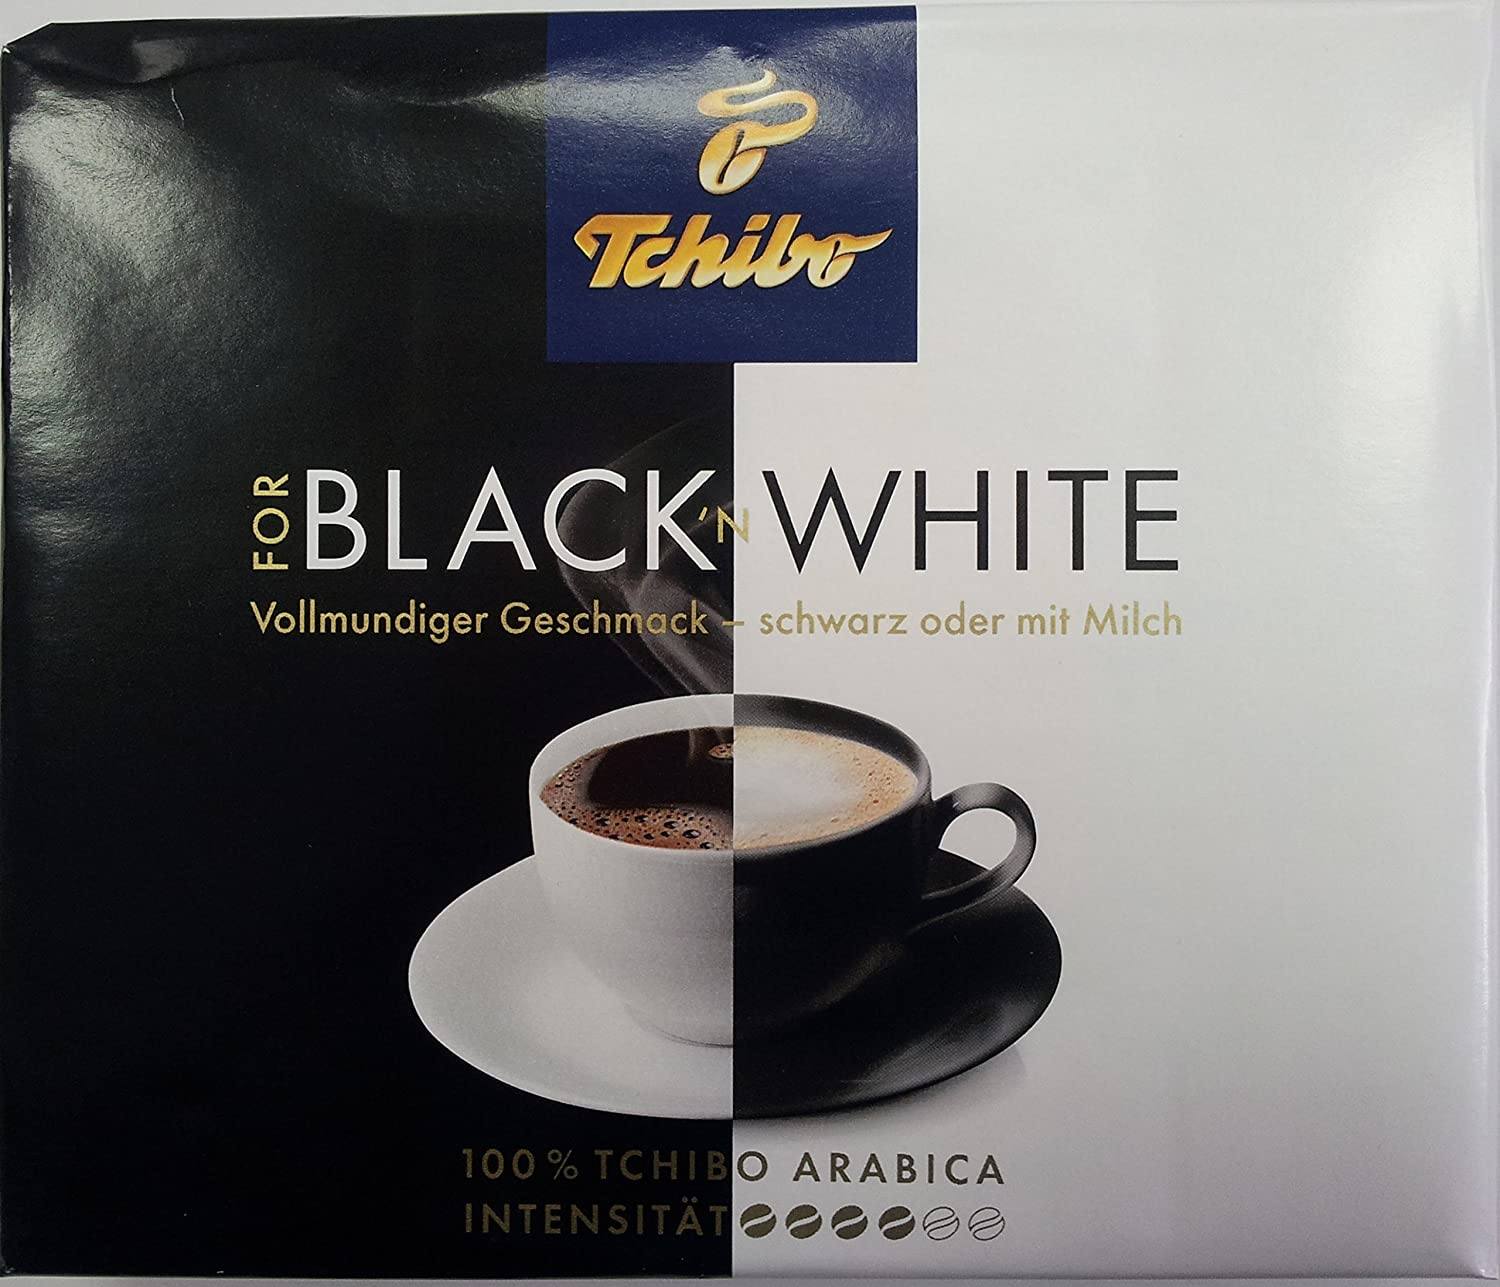 Tchibo Negro n Color Blanco De Café Molido 500 g: Amazon ...